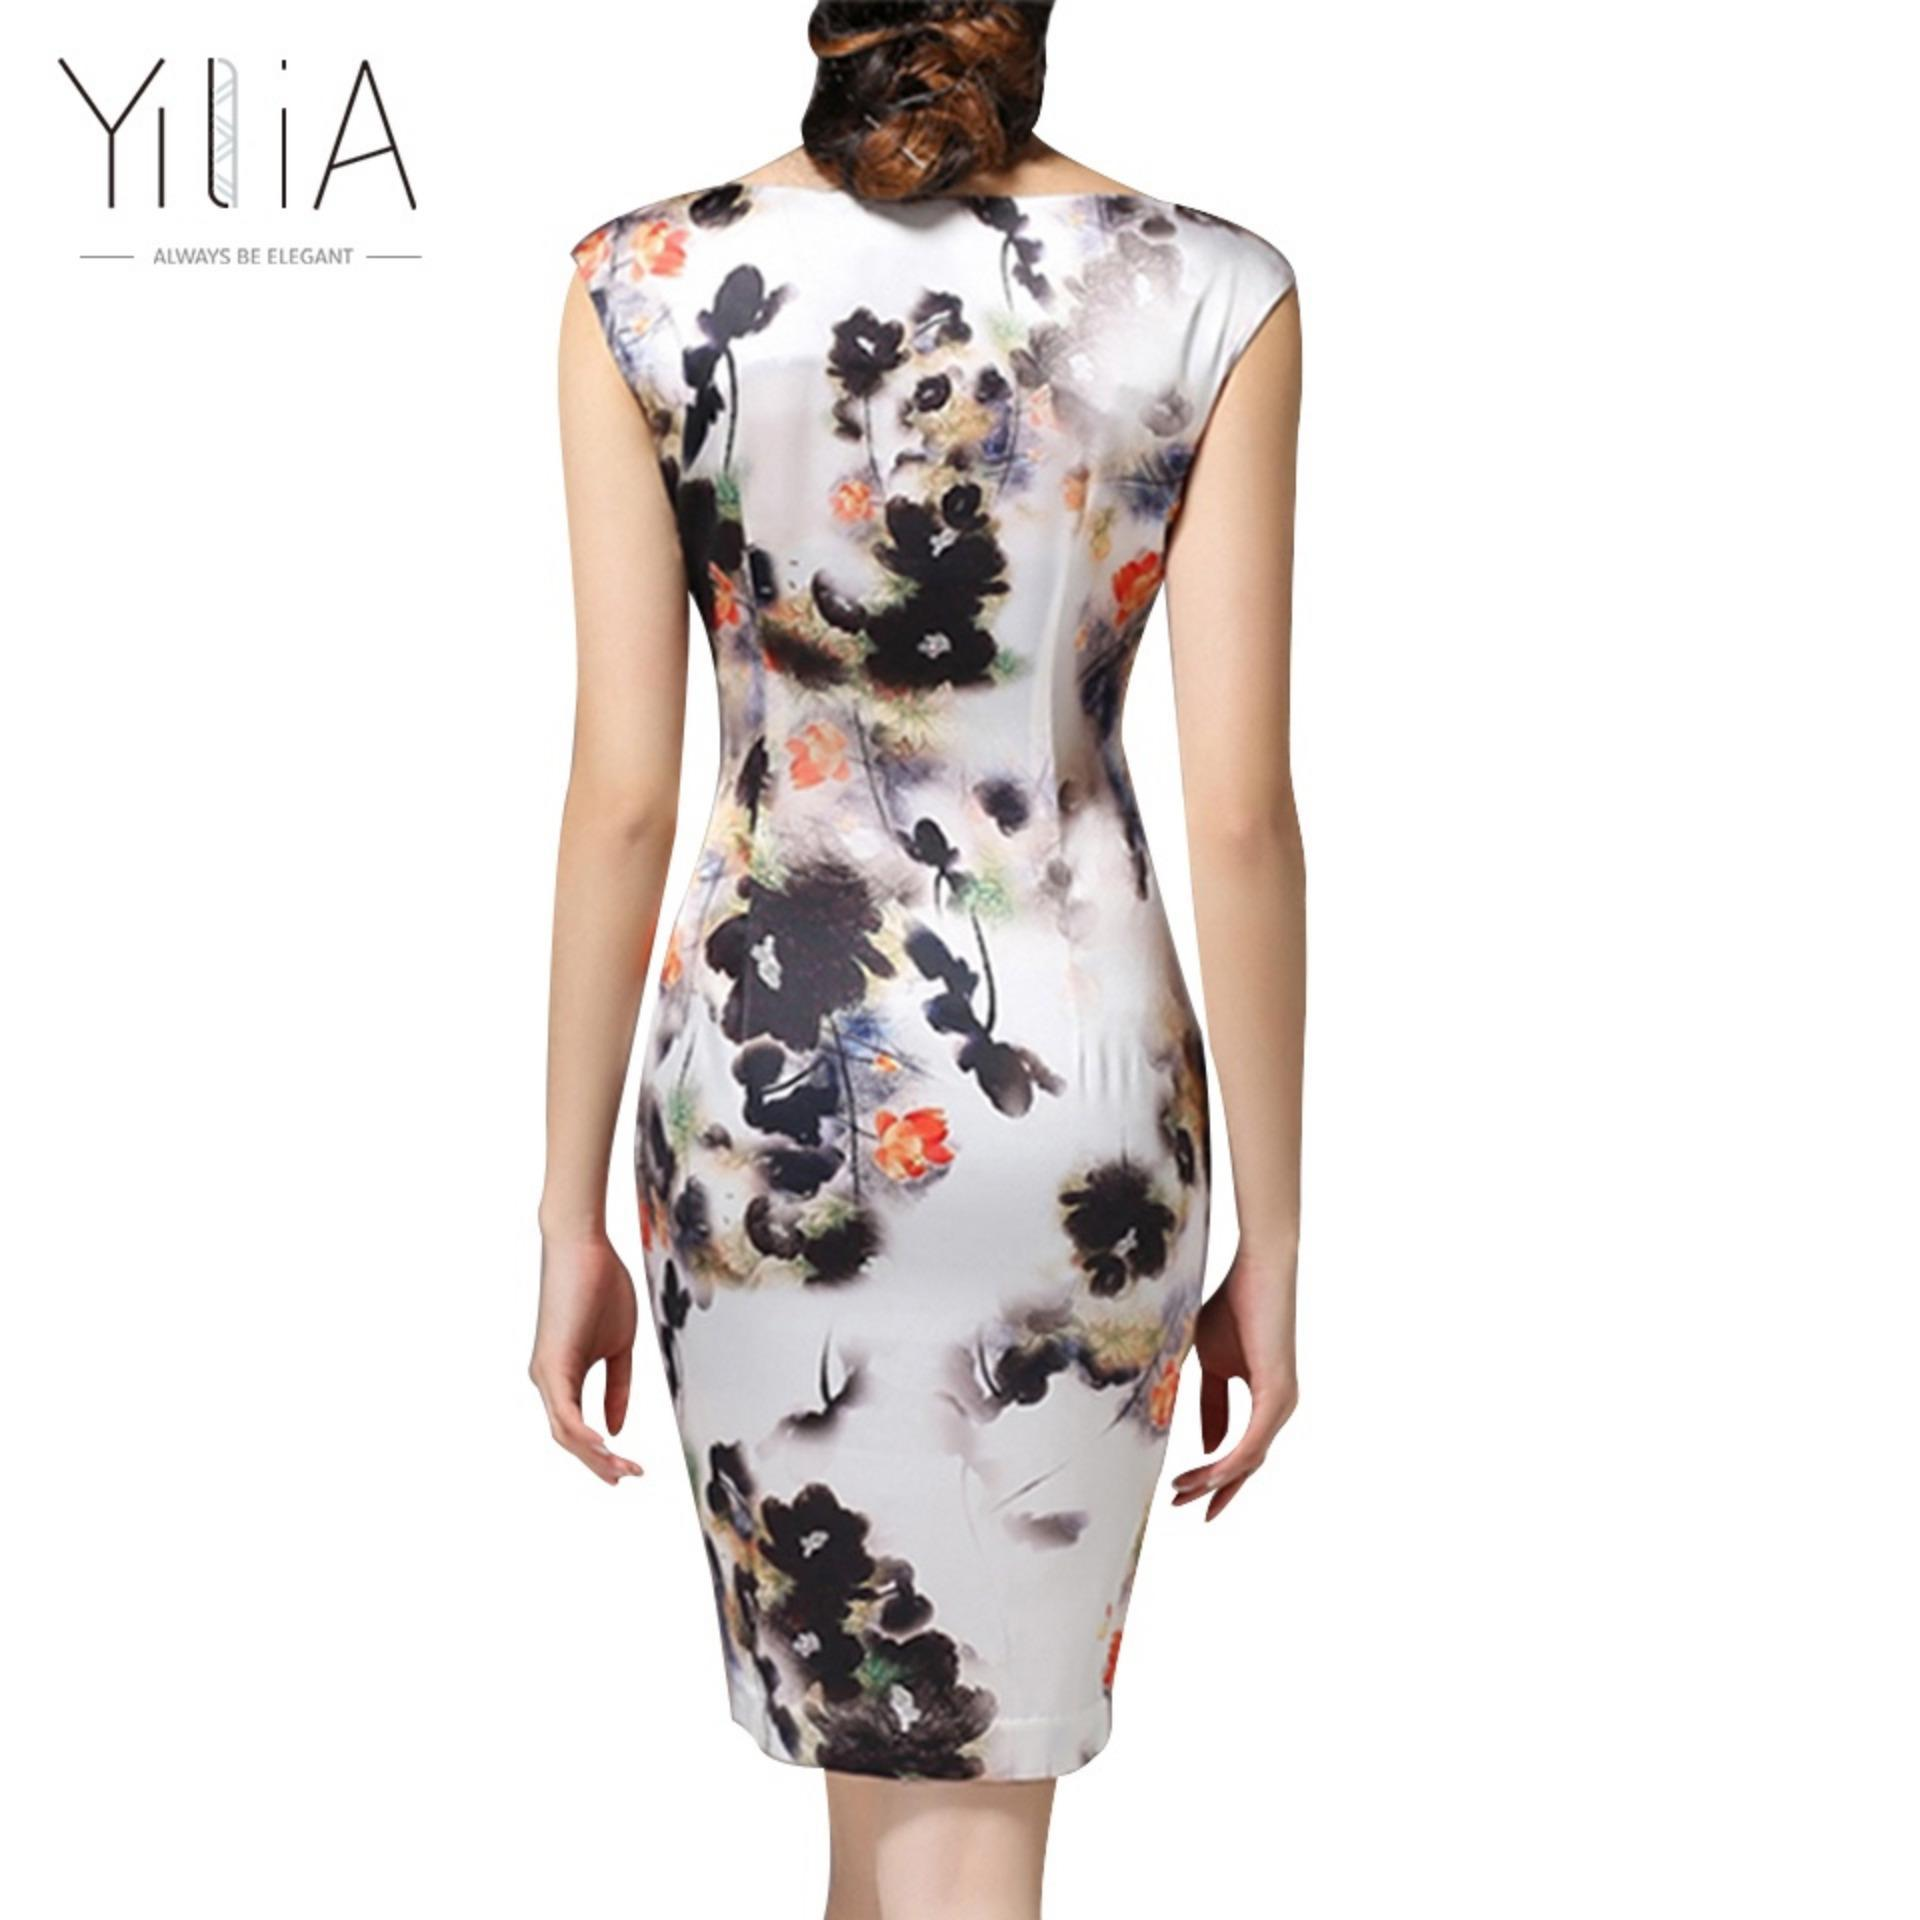 Makarizo Advisor Hair Vitamin 50 Pcs Cashmere Soft Smooth Kuning Blister 6x1ml 2017 Yilia Floral Print Dress Women Elegant Vintage Chinese Inkprinted Bodycon 4xl